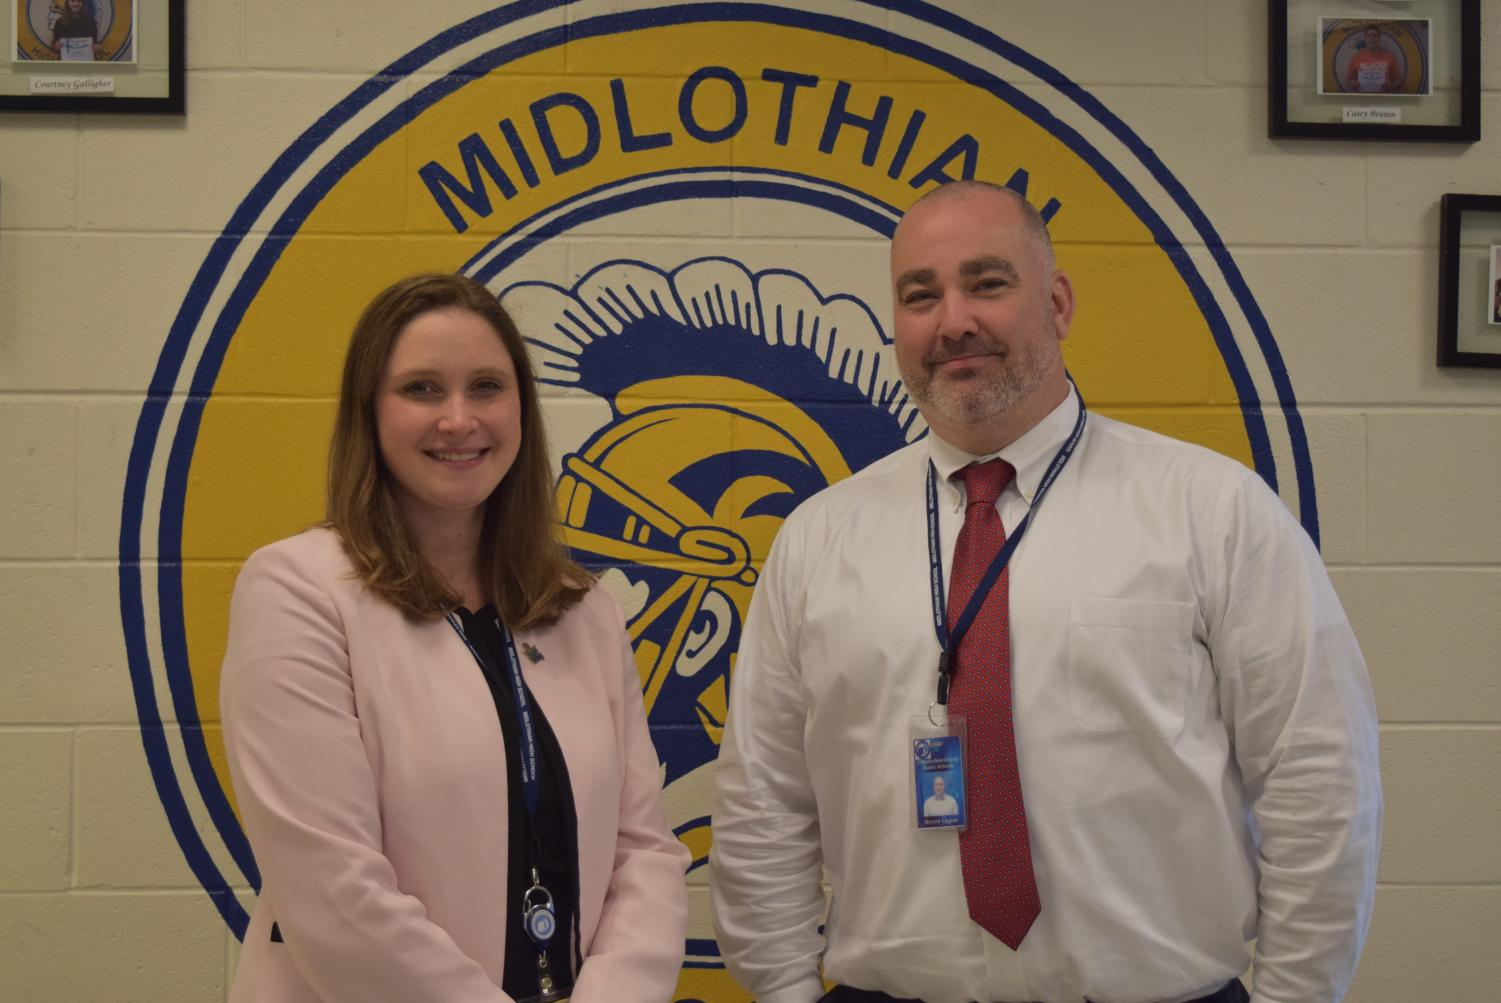 Dr. Moonie and Mr. Lagow enjoy their first week at Midlothian High School.